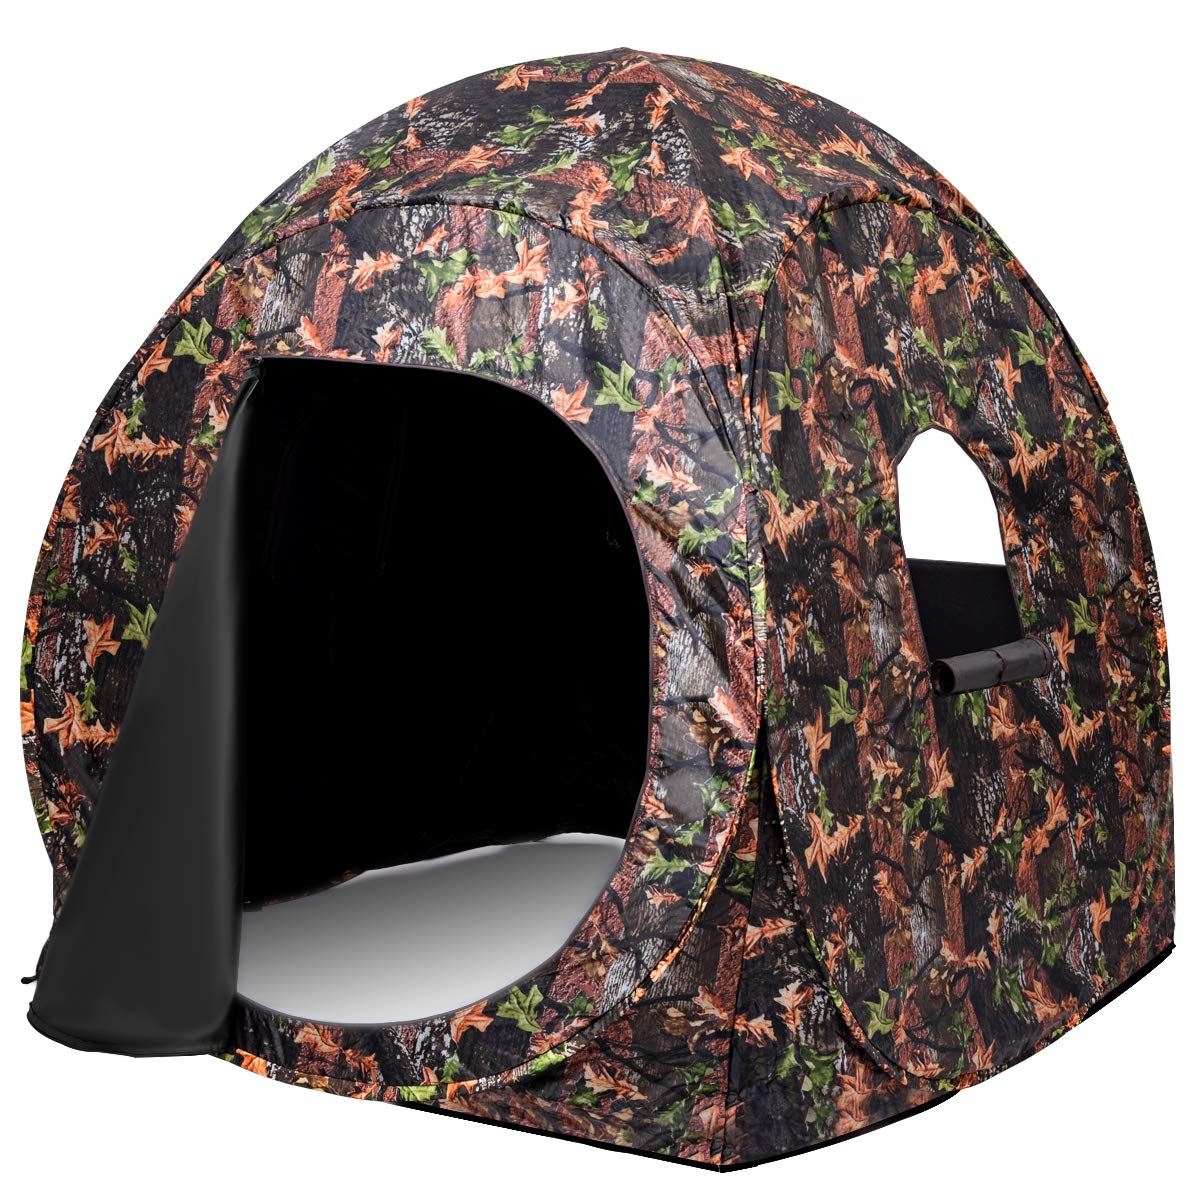 Tangkula Hunting Tent Portable Hunting Blind Pop Up Ground Blind 2-3 People Camo Waterproof with Backpack Hunting Enclosure by Tangkula (Image #1)